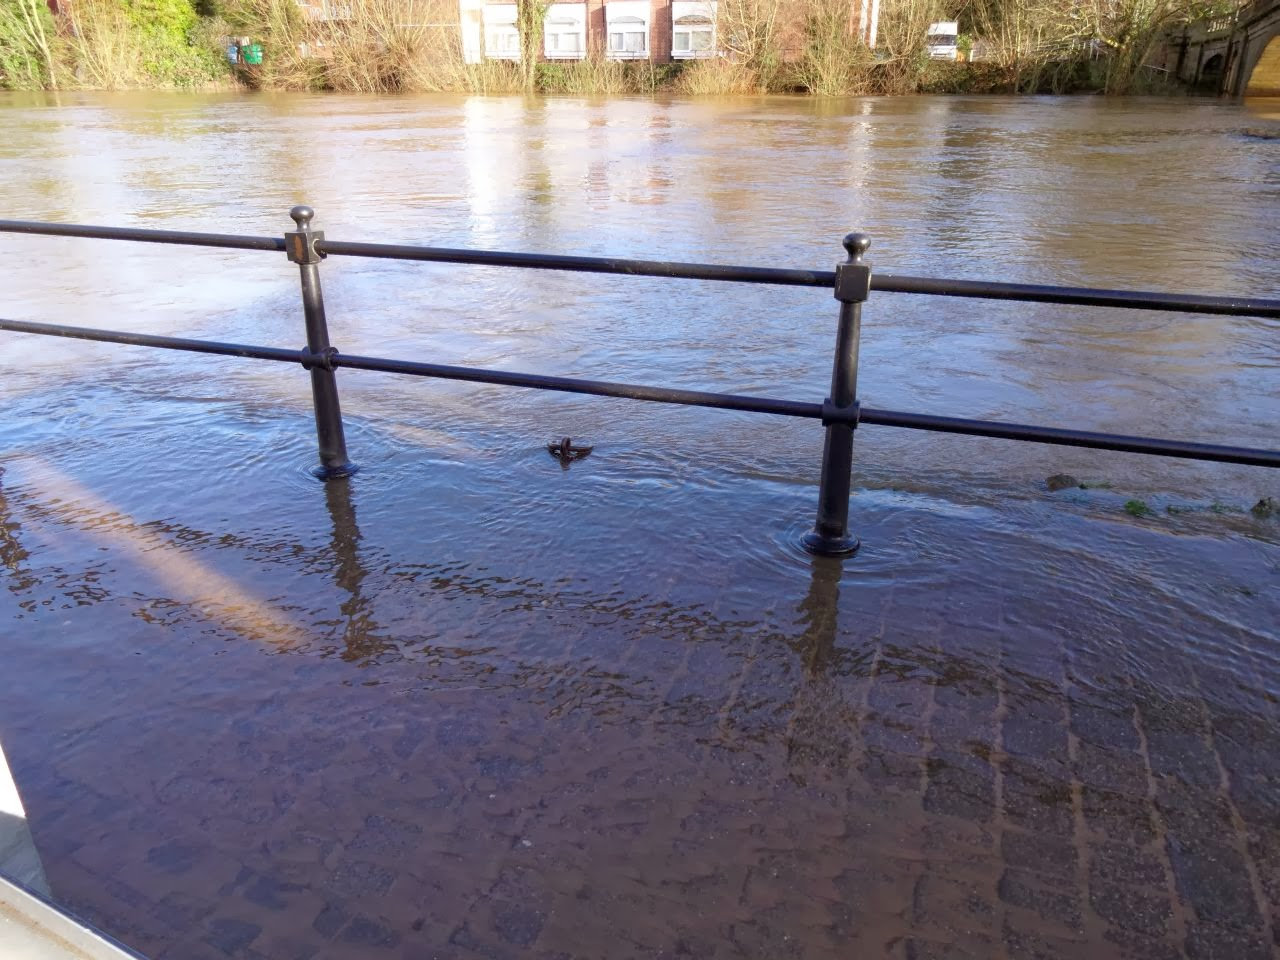 The river Severn breaching the banks at Severn Side North, Bewdley